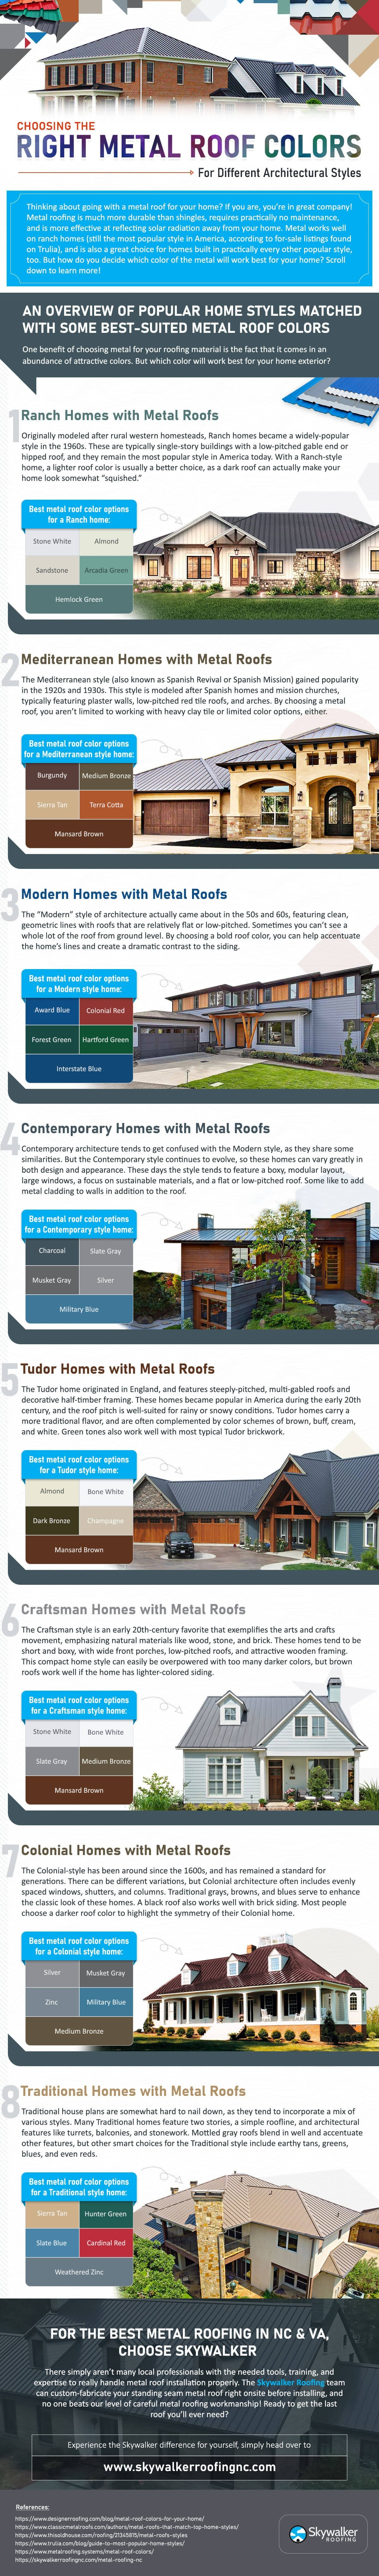 choosing-the-right-metal-roof-colors-for-different-architectural-styles-infographic